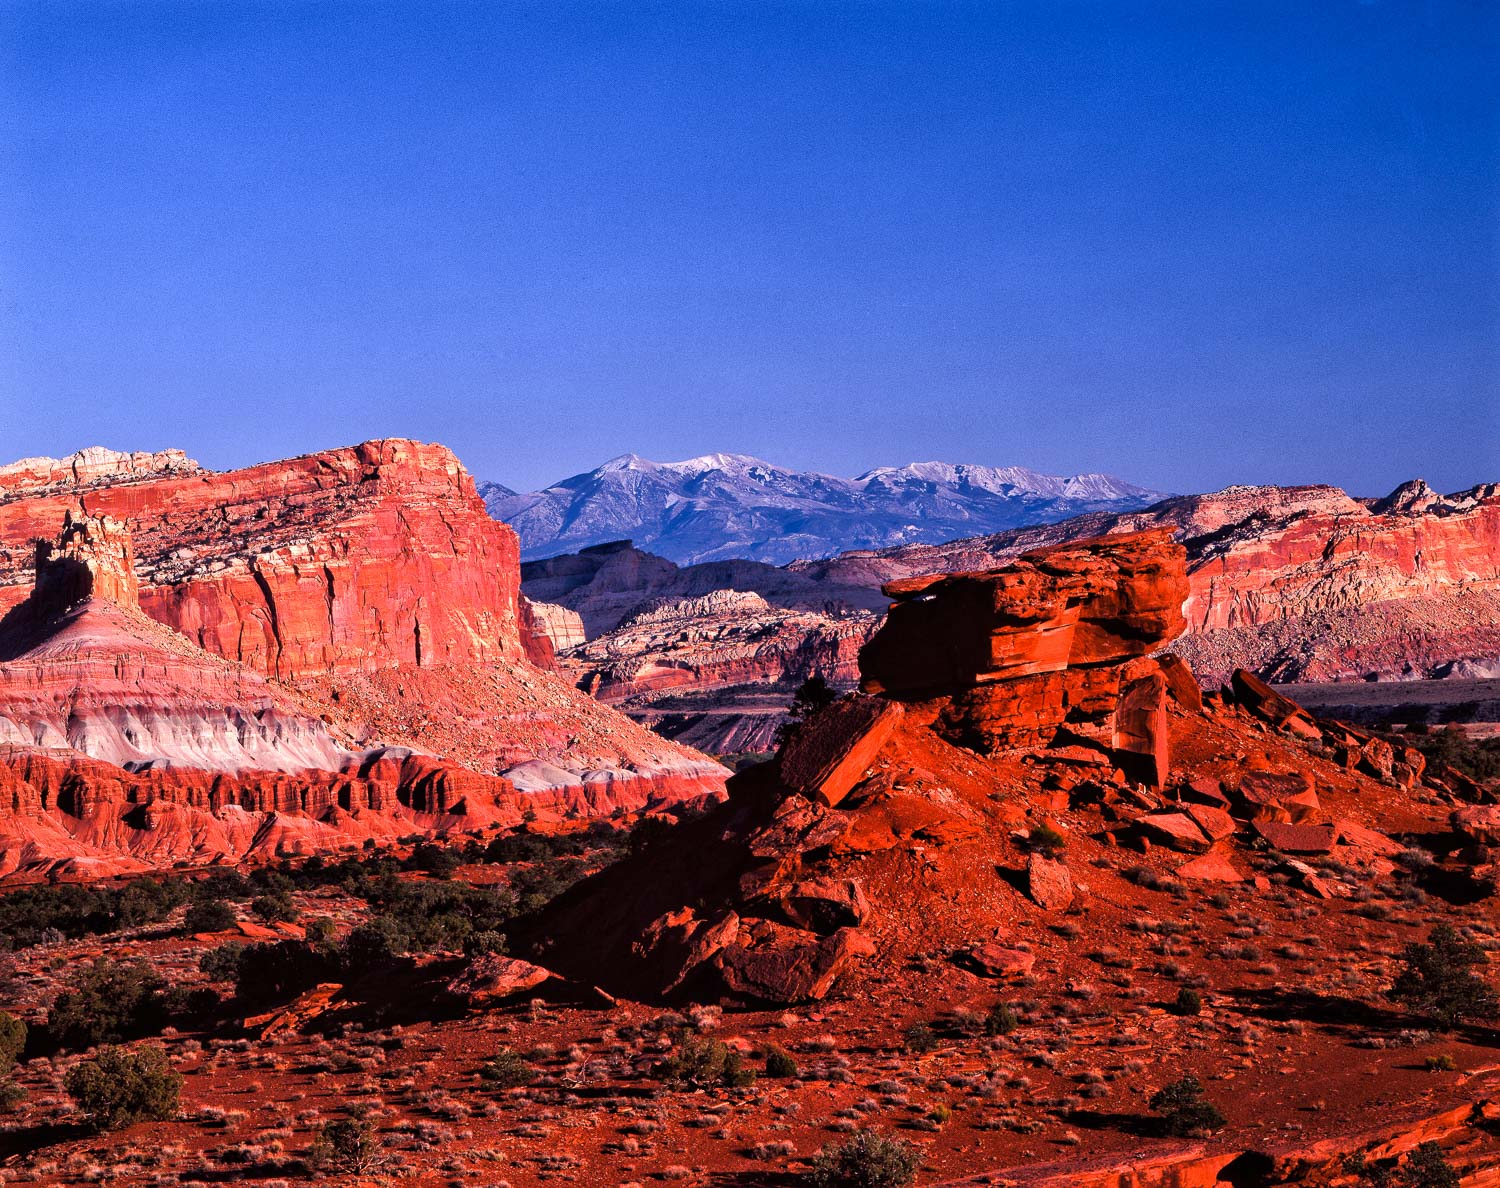 PANORAMIC POINT CAPITOL REEF, UTAH